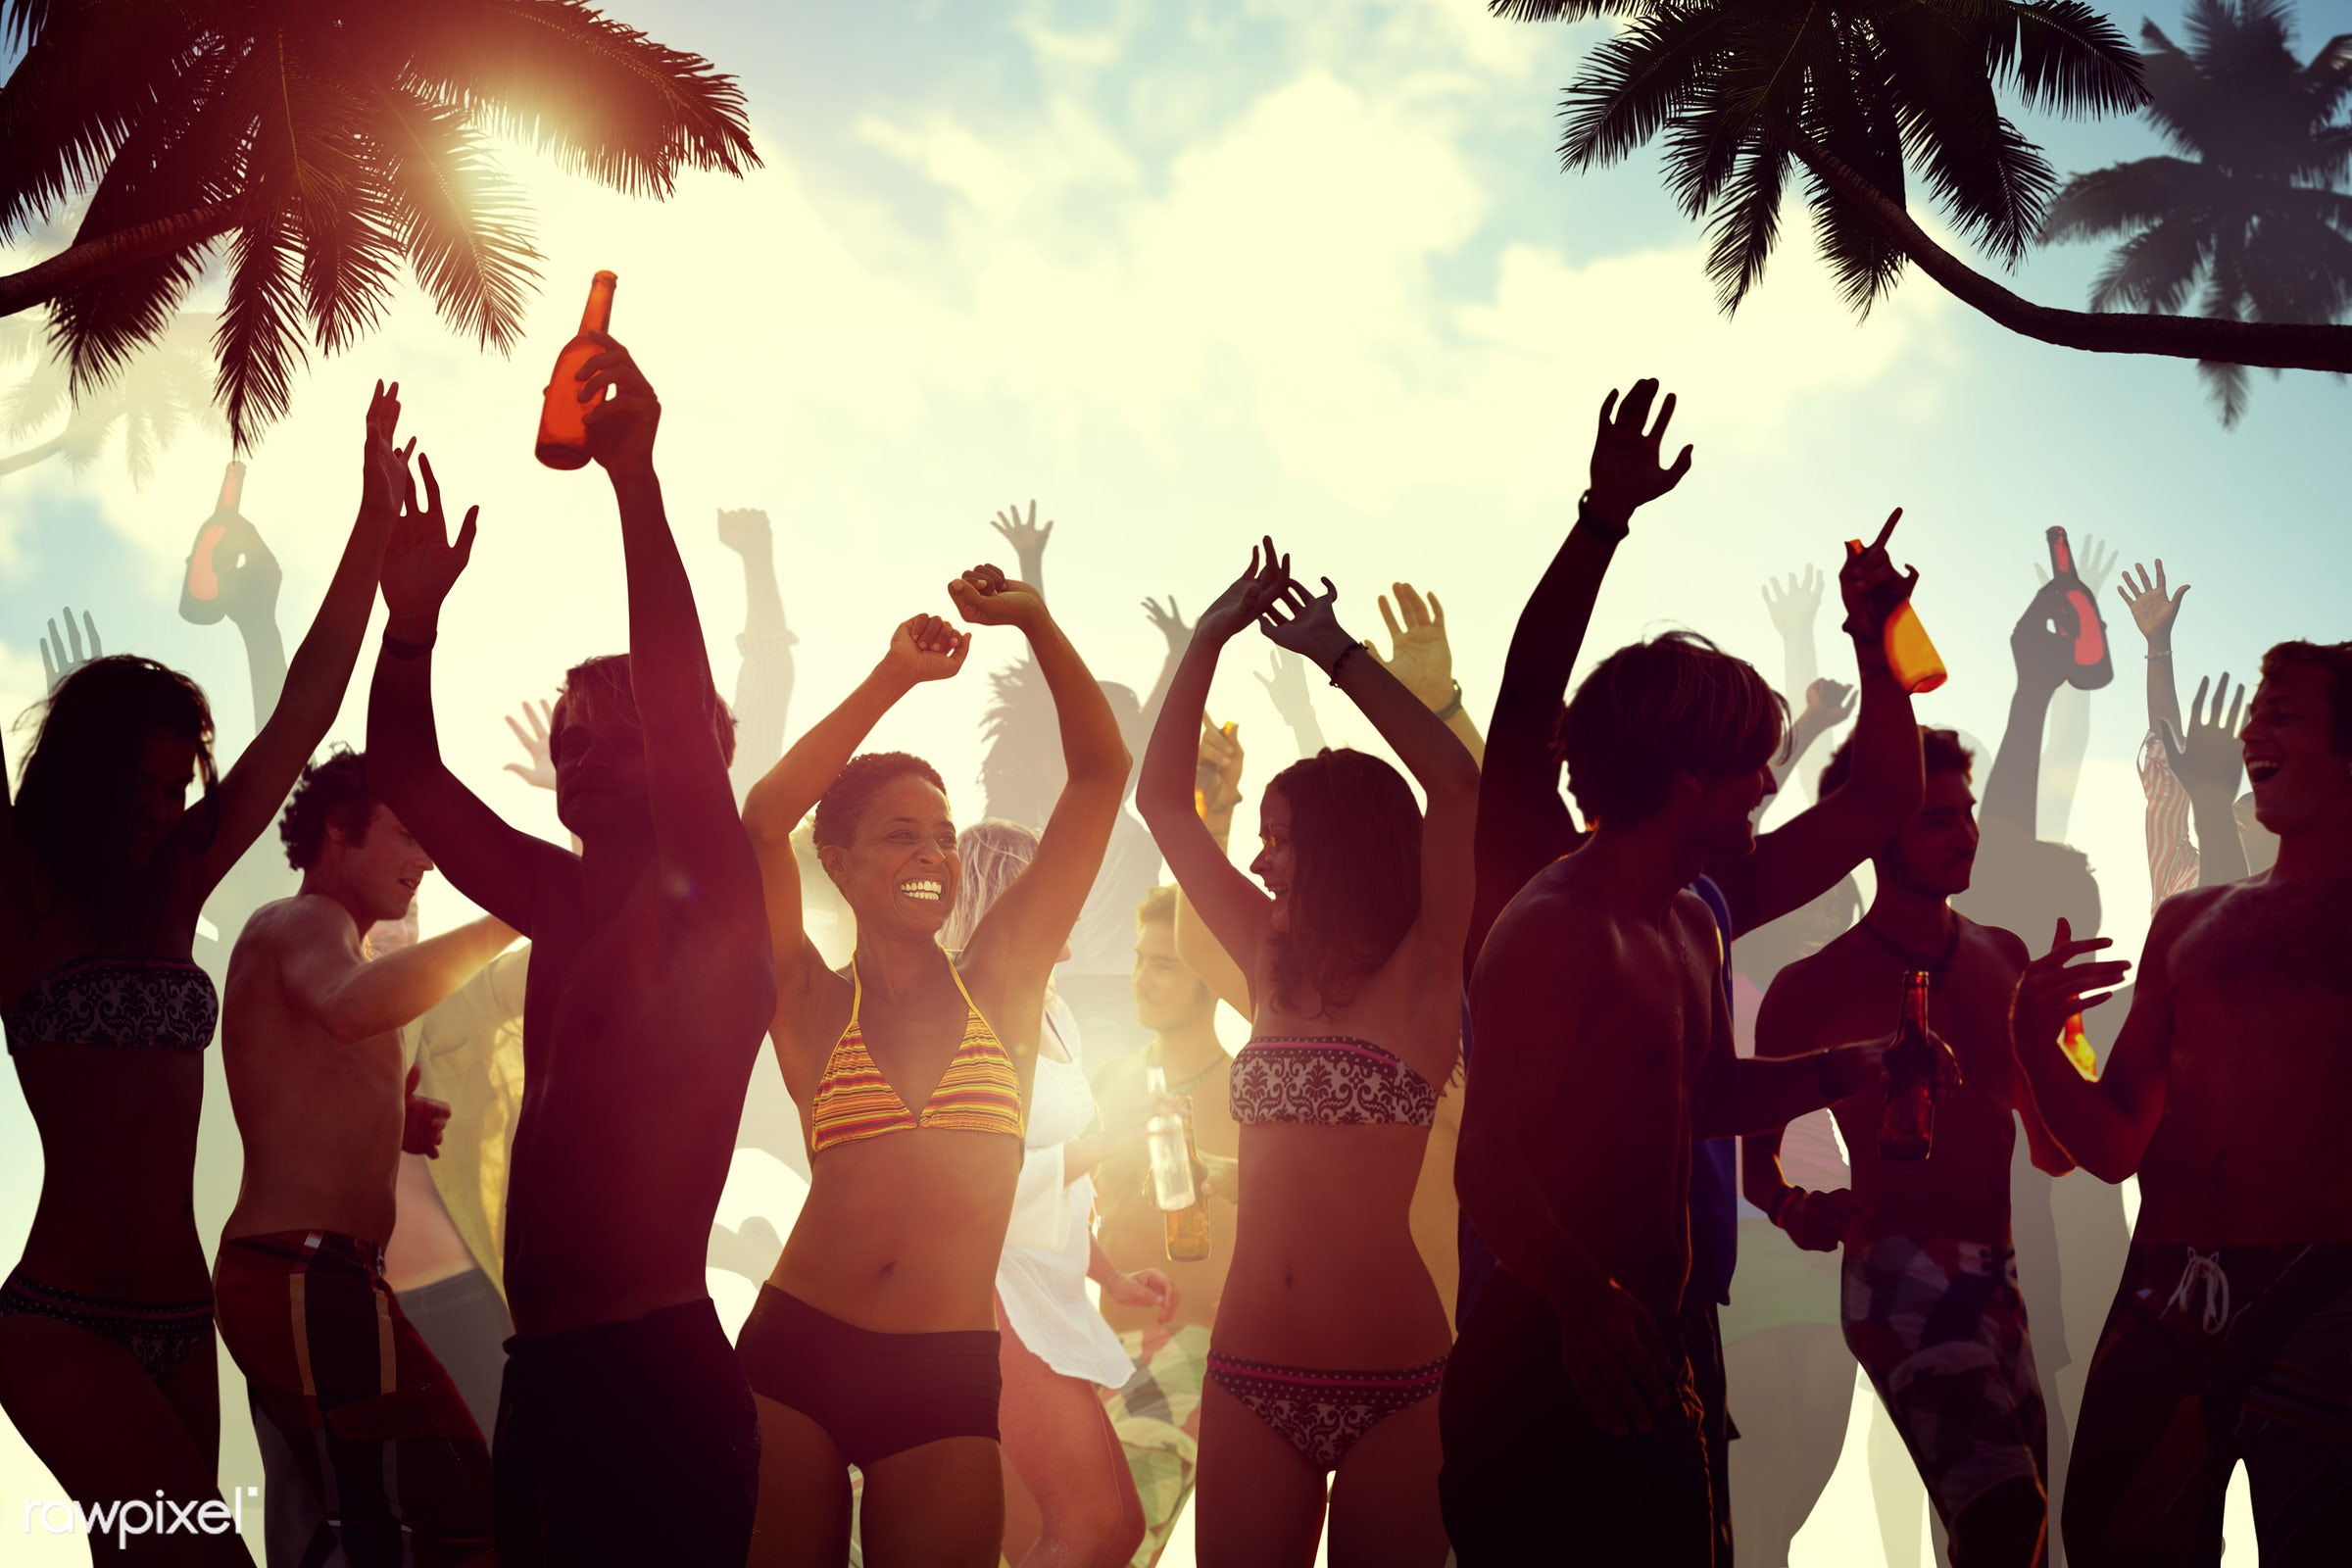 beer, activity, alcohol, arms outstretched, arms raised, back lit, beach, bikini, celebration, cheerful, cheering, coconut...